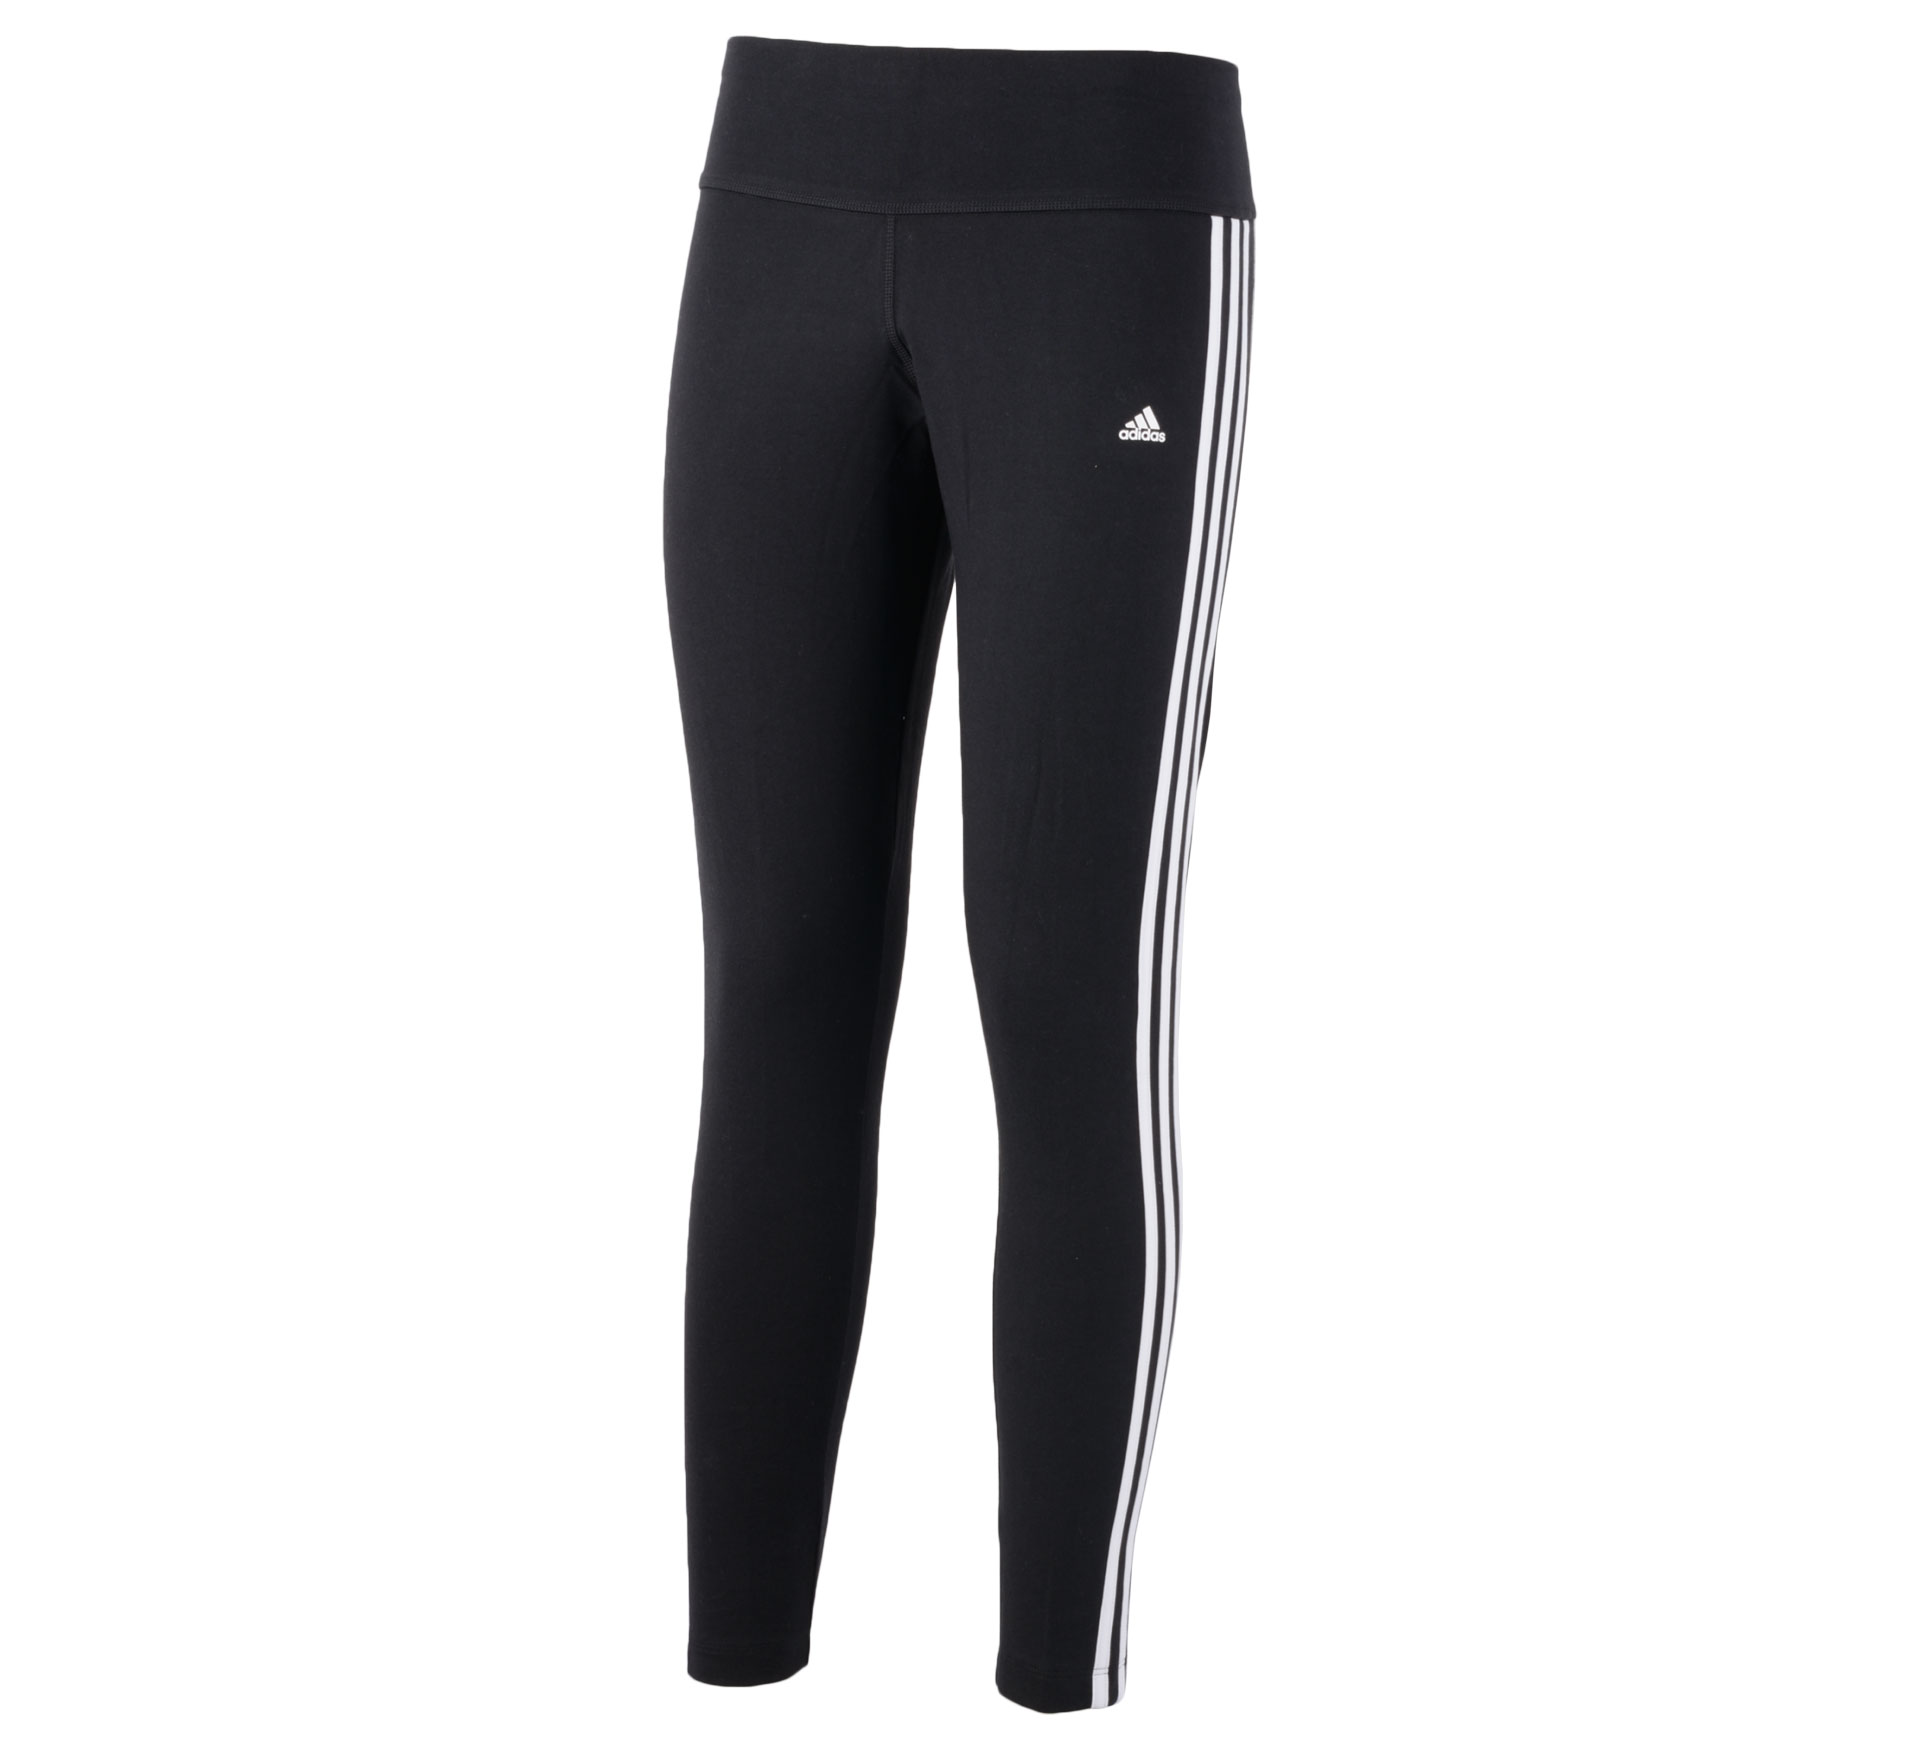 Adidas Ess 3S Tight zwart - wit